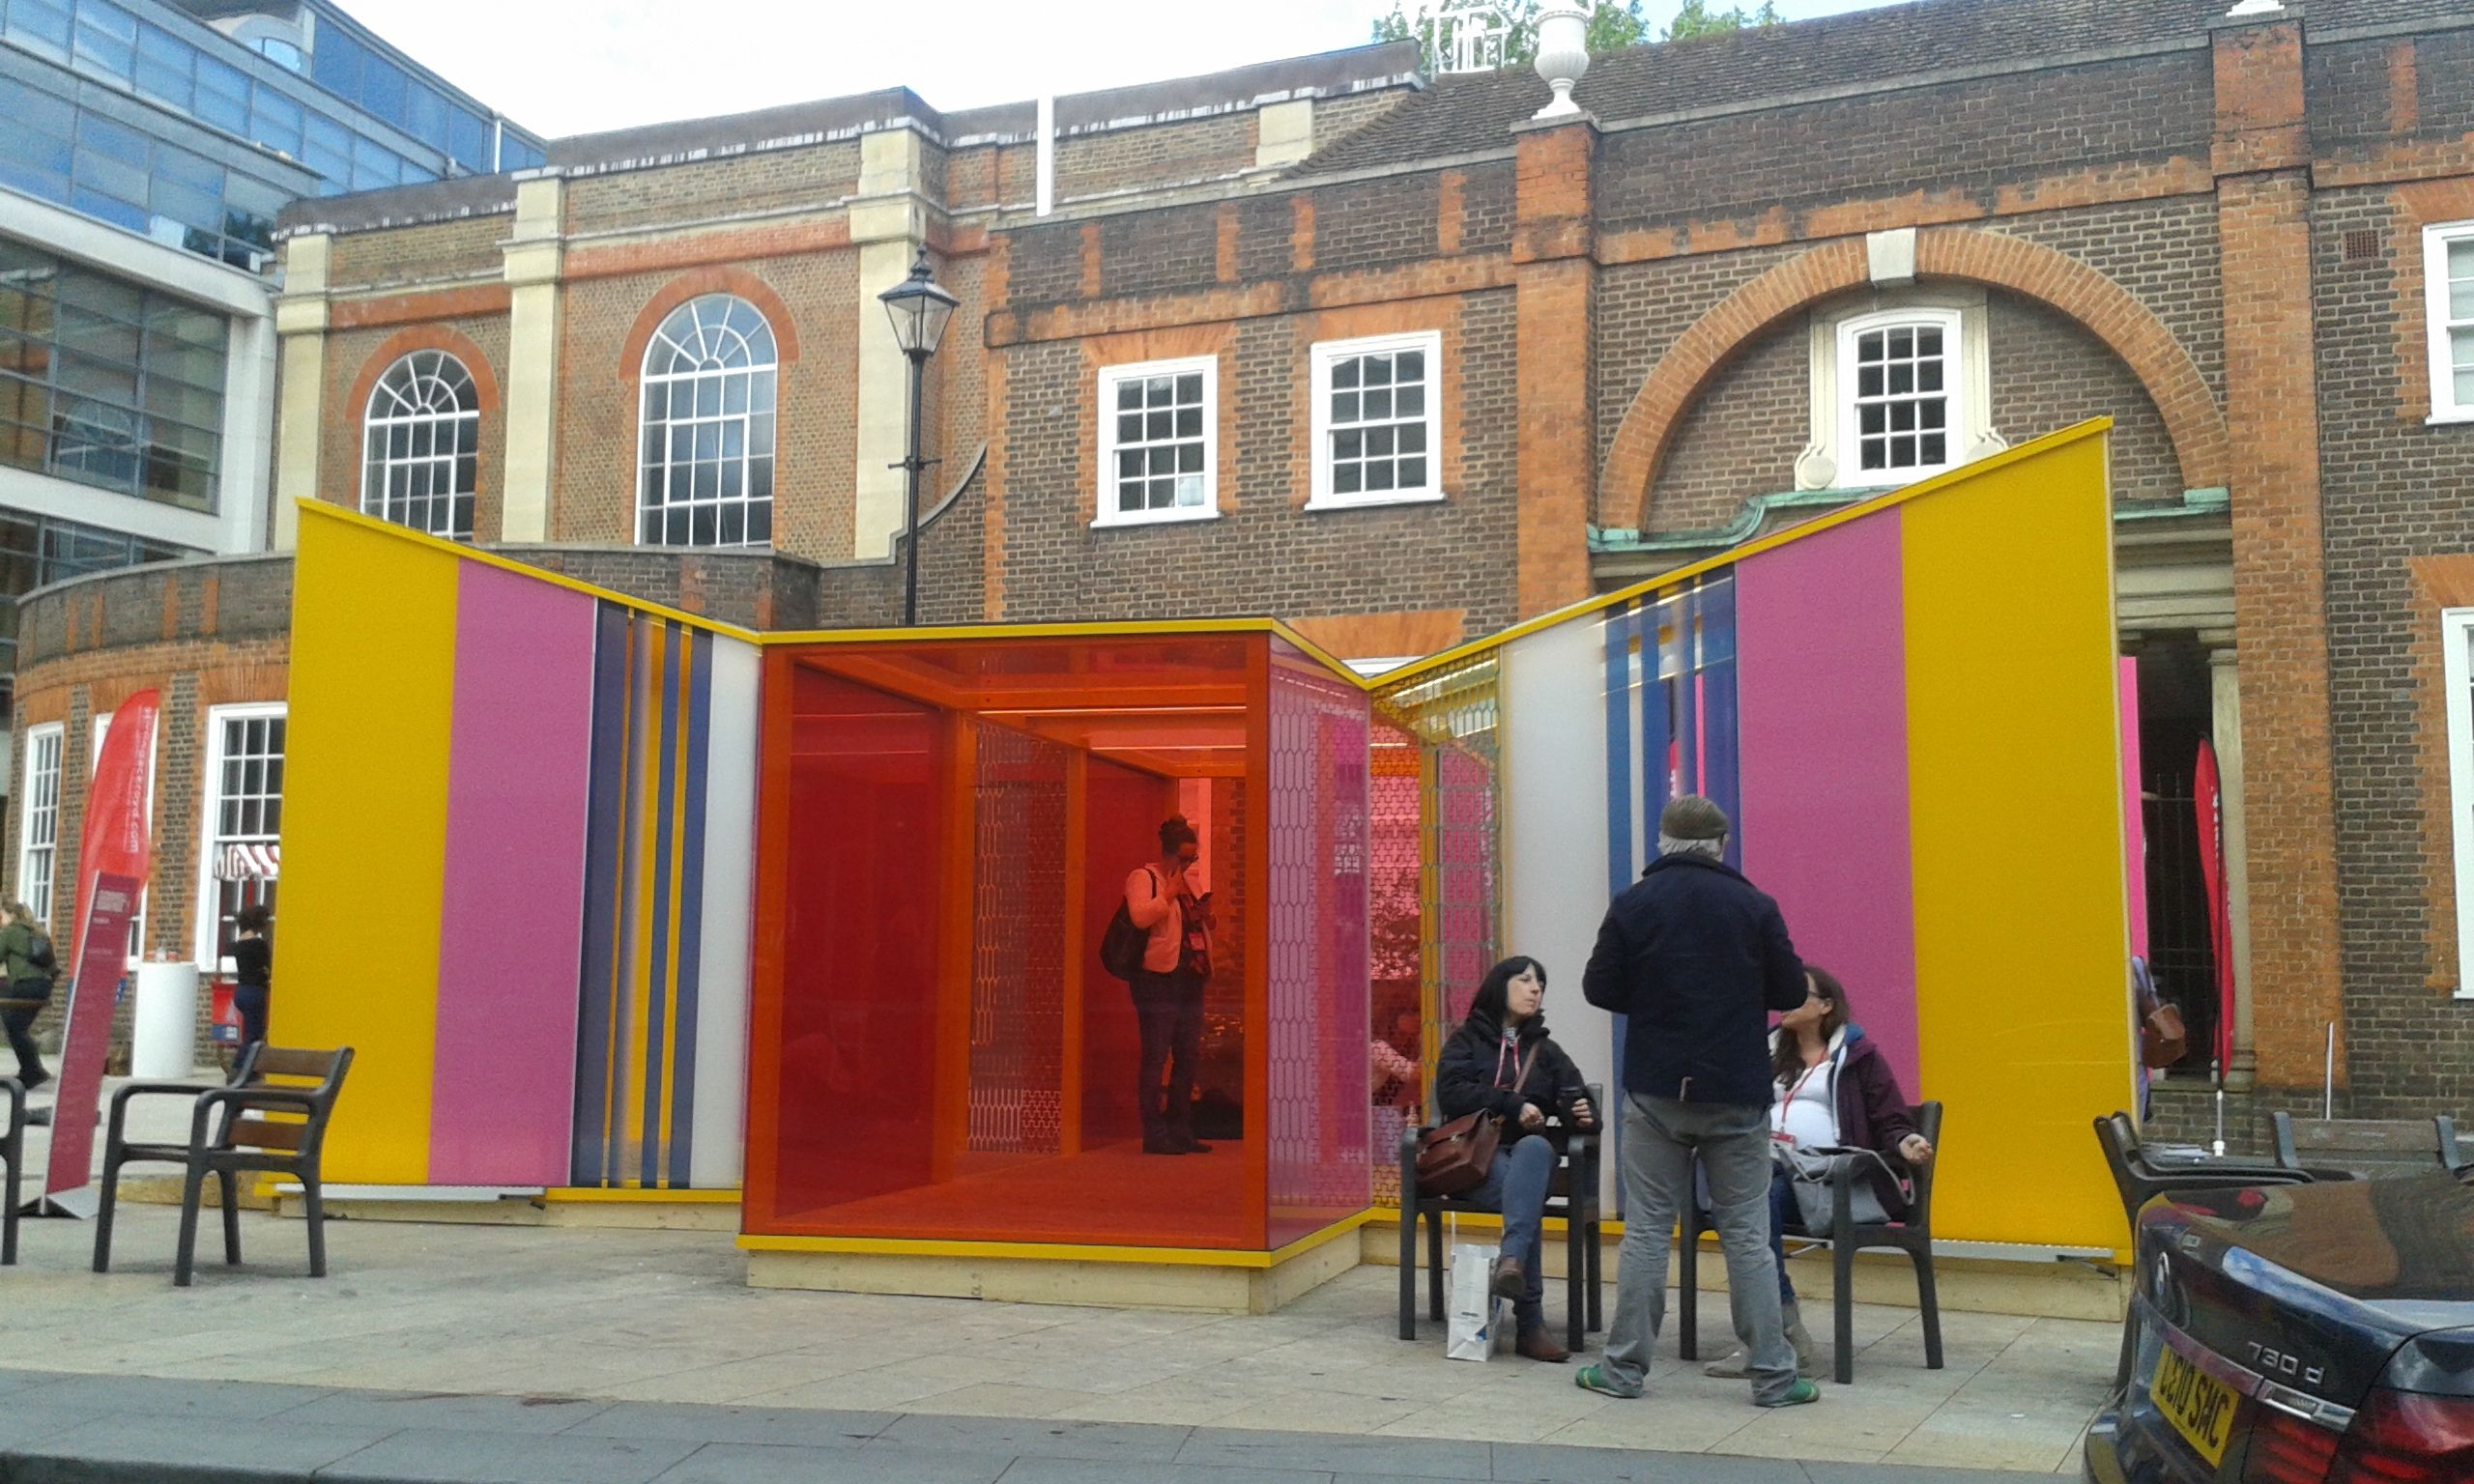 london design festival 2018 Design Districts at London Design Festival 2018 2015 05 20 16